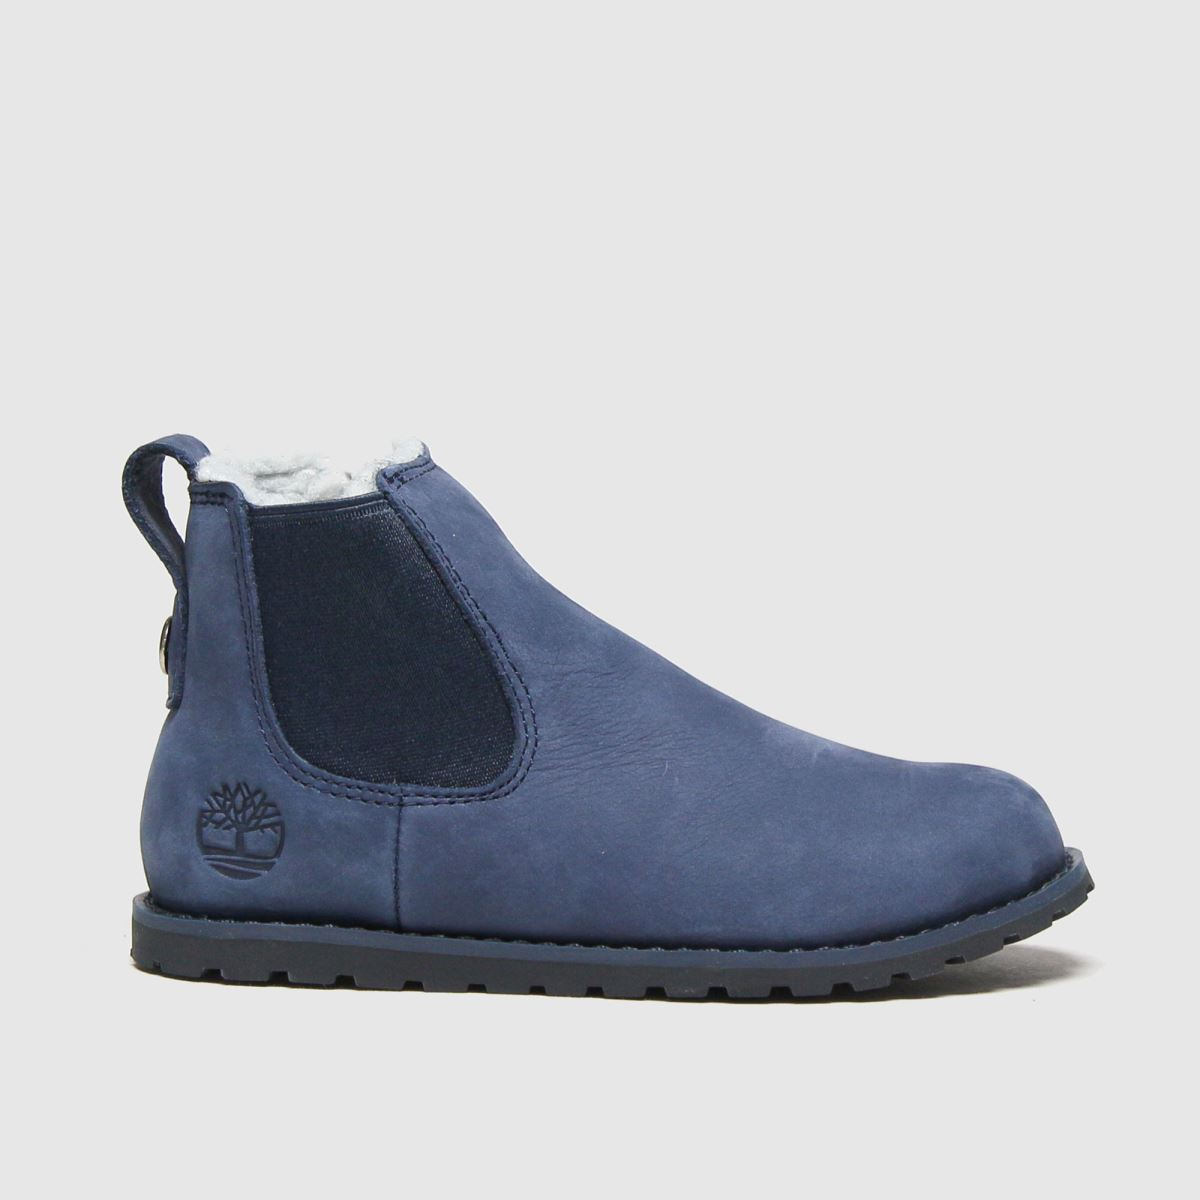 Timberland Navy Pokey Pine Chelsea Boots Toddler